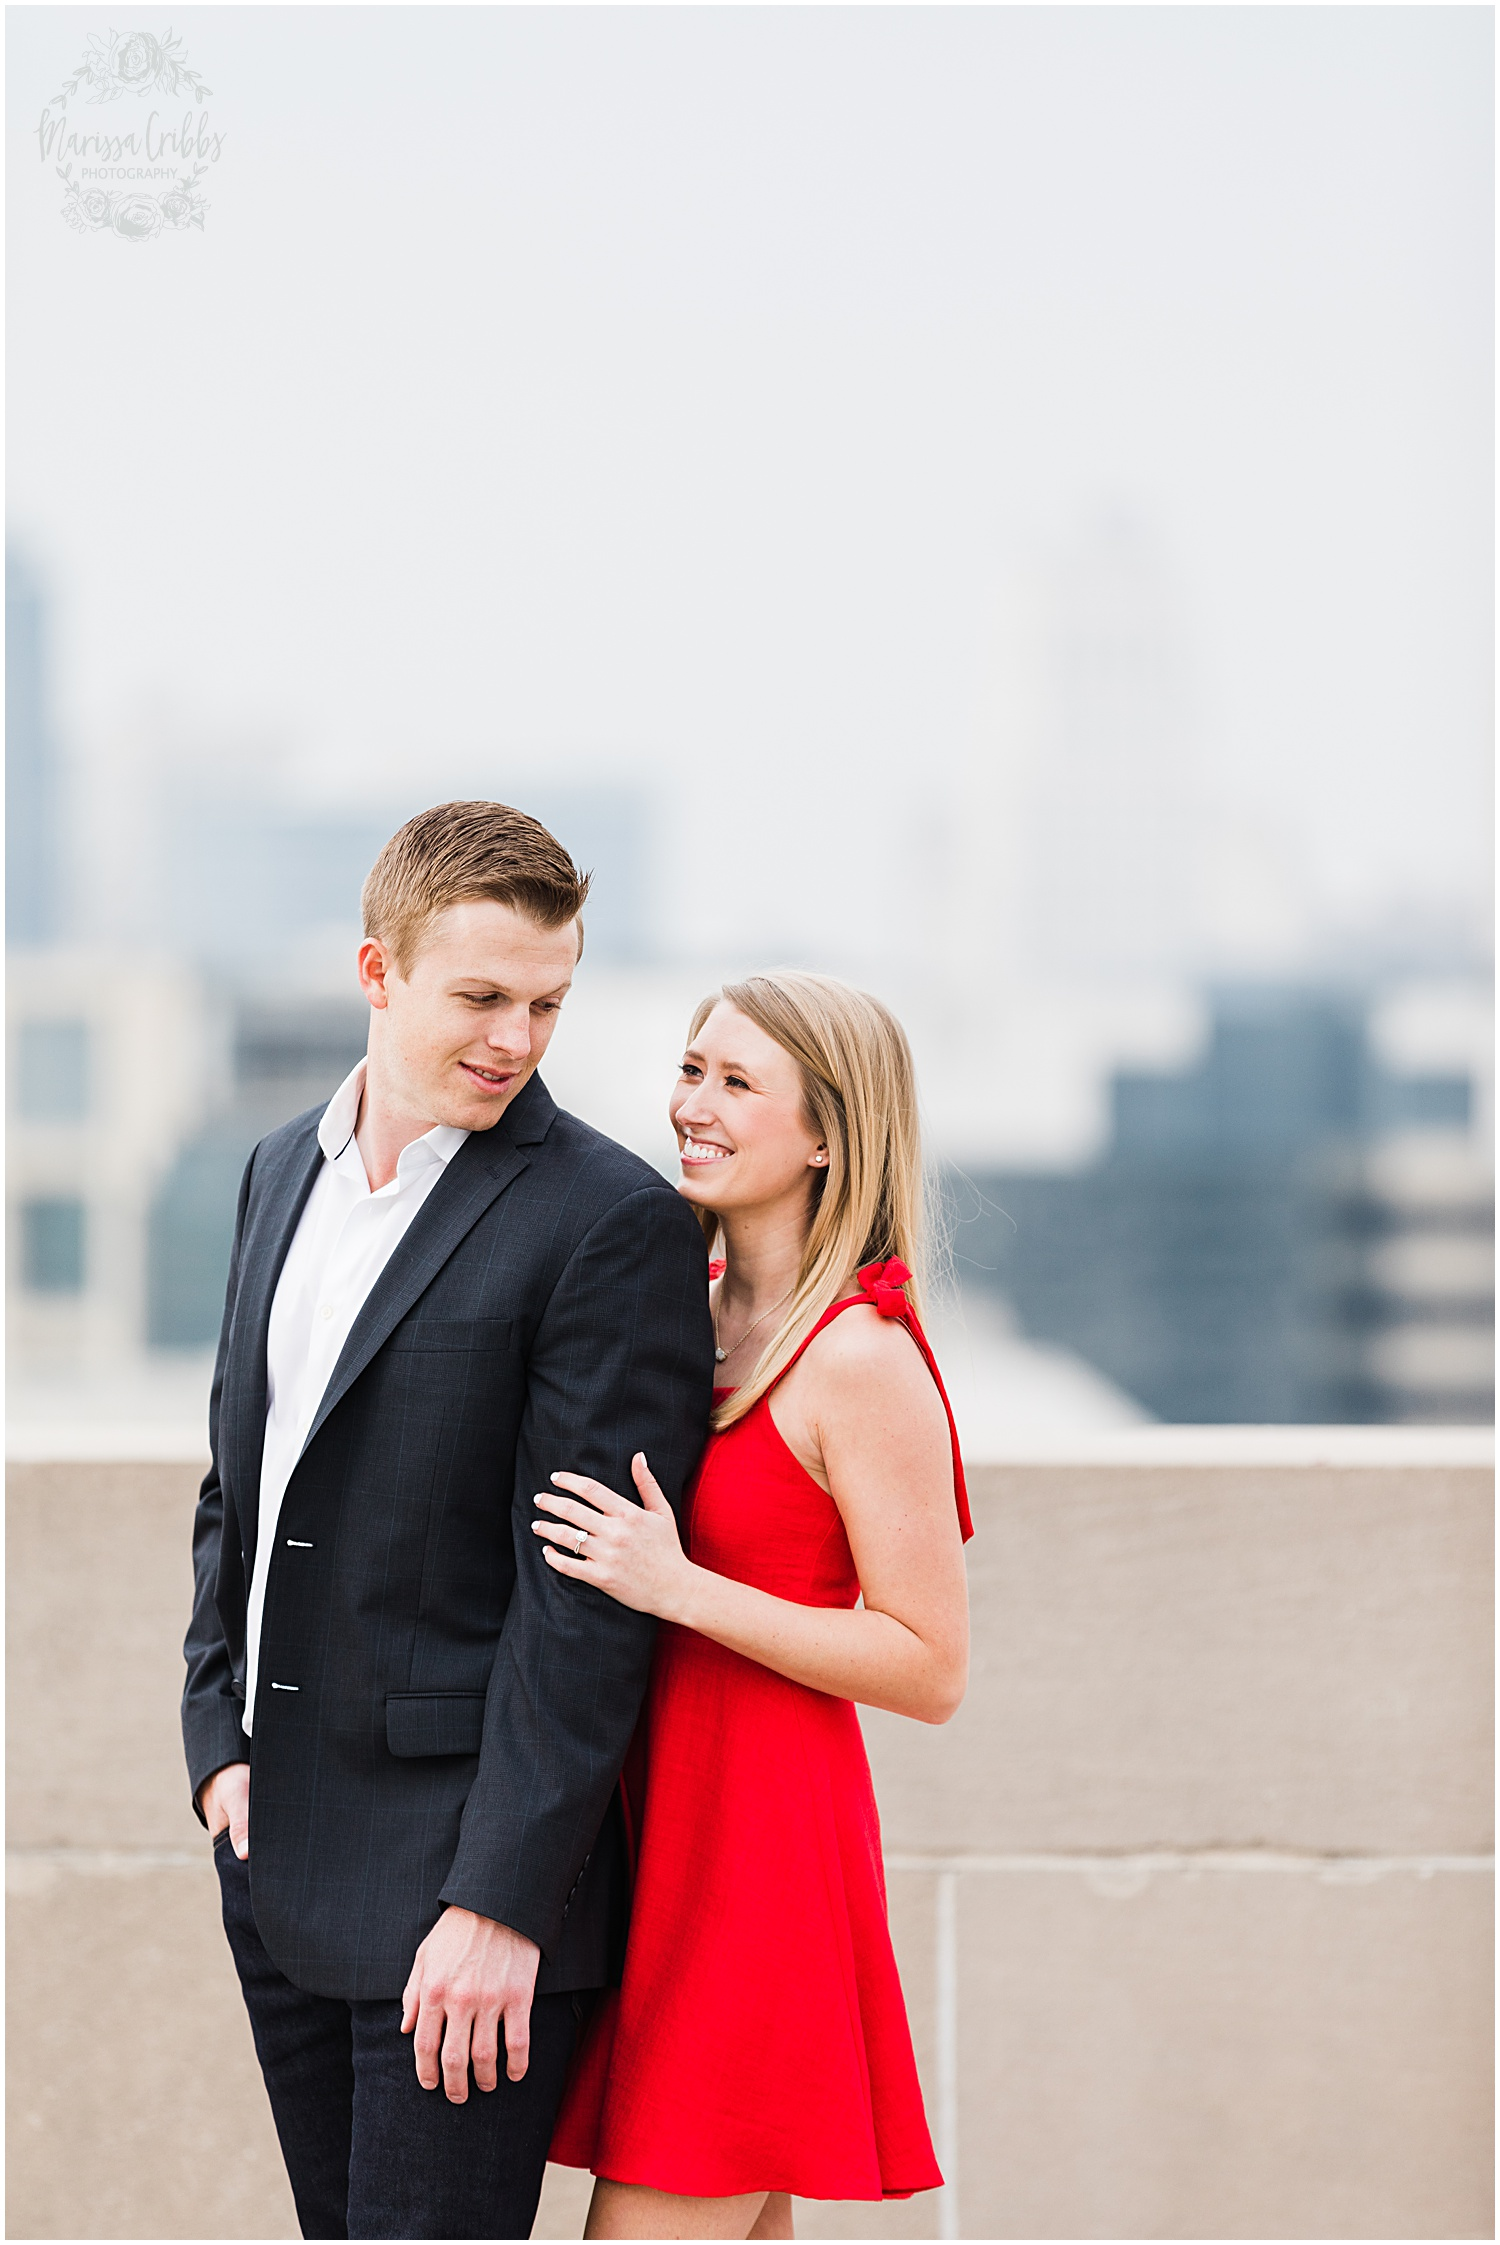 MADDY & KYLE ENGAGEMENT | MARISSA CRIBBS PHOTOGRAPHY_7624.jpg